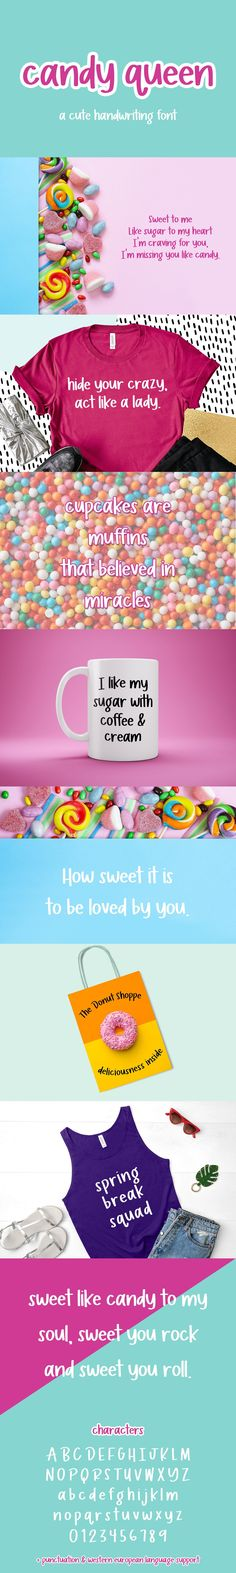 Download Candy Queen Sans Font (852418) today! We have a huge range of Display products available. Commercial License Included. Sweet Like Candy, Brand Fonts, Classroom Projects, Cricut Fonts, Graphic Quotes, Handwriting Fonts, Social Media Logos, Modern Fonts, Silhouette Projects